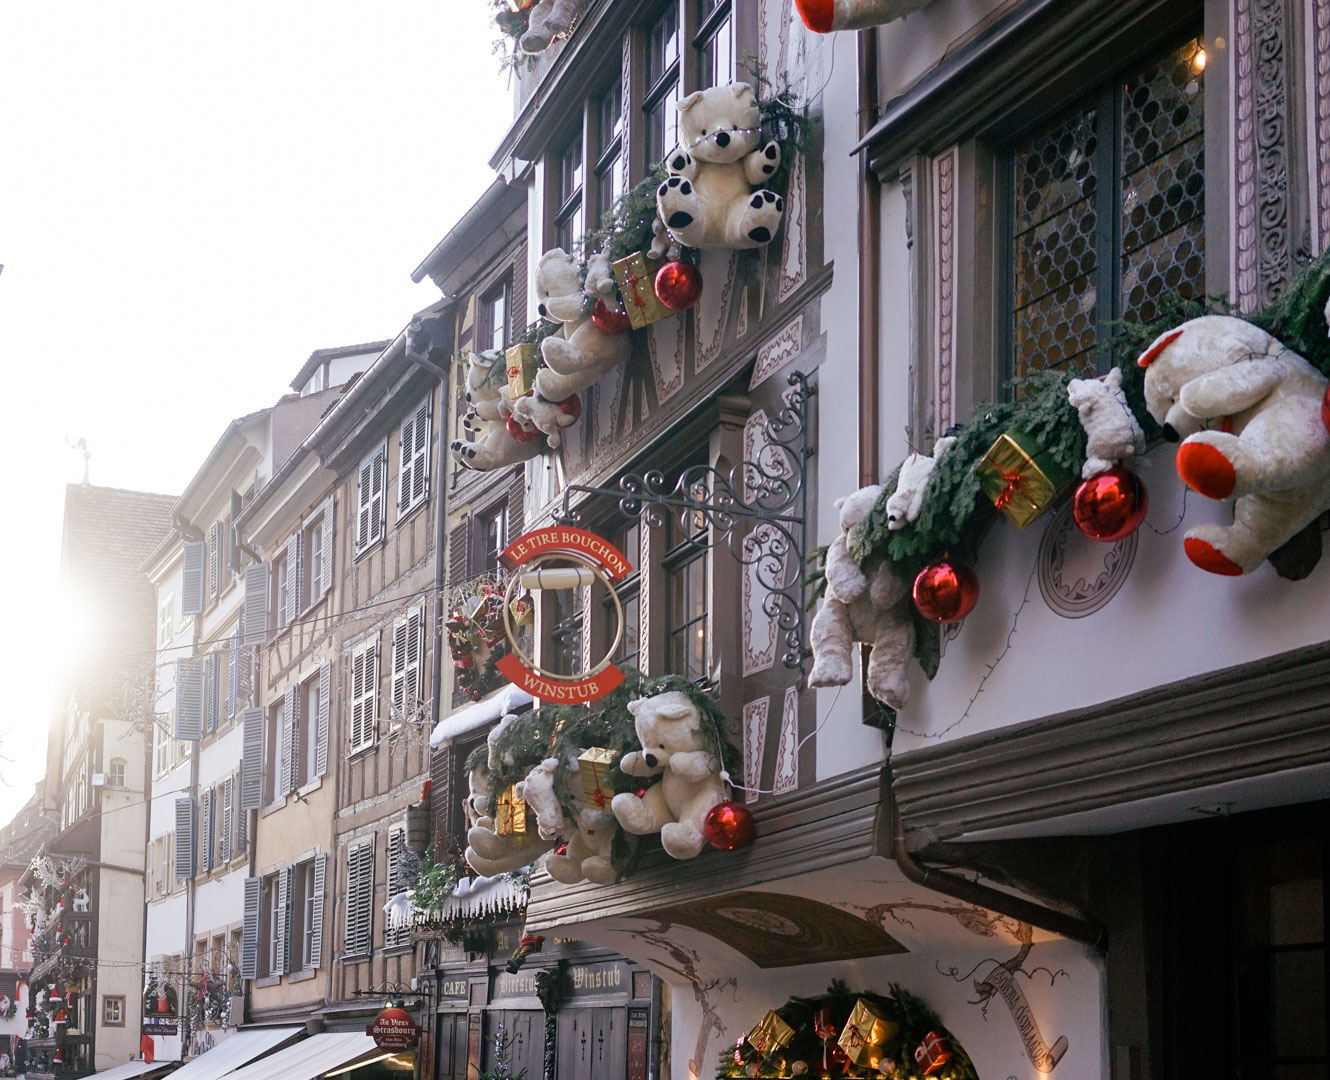 During Christmas, the extravagant decorations, warm and sweet